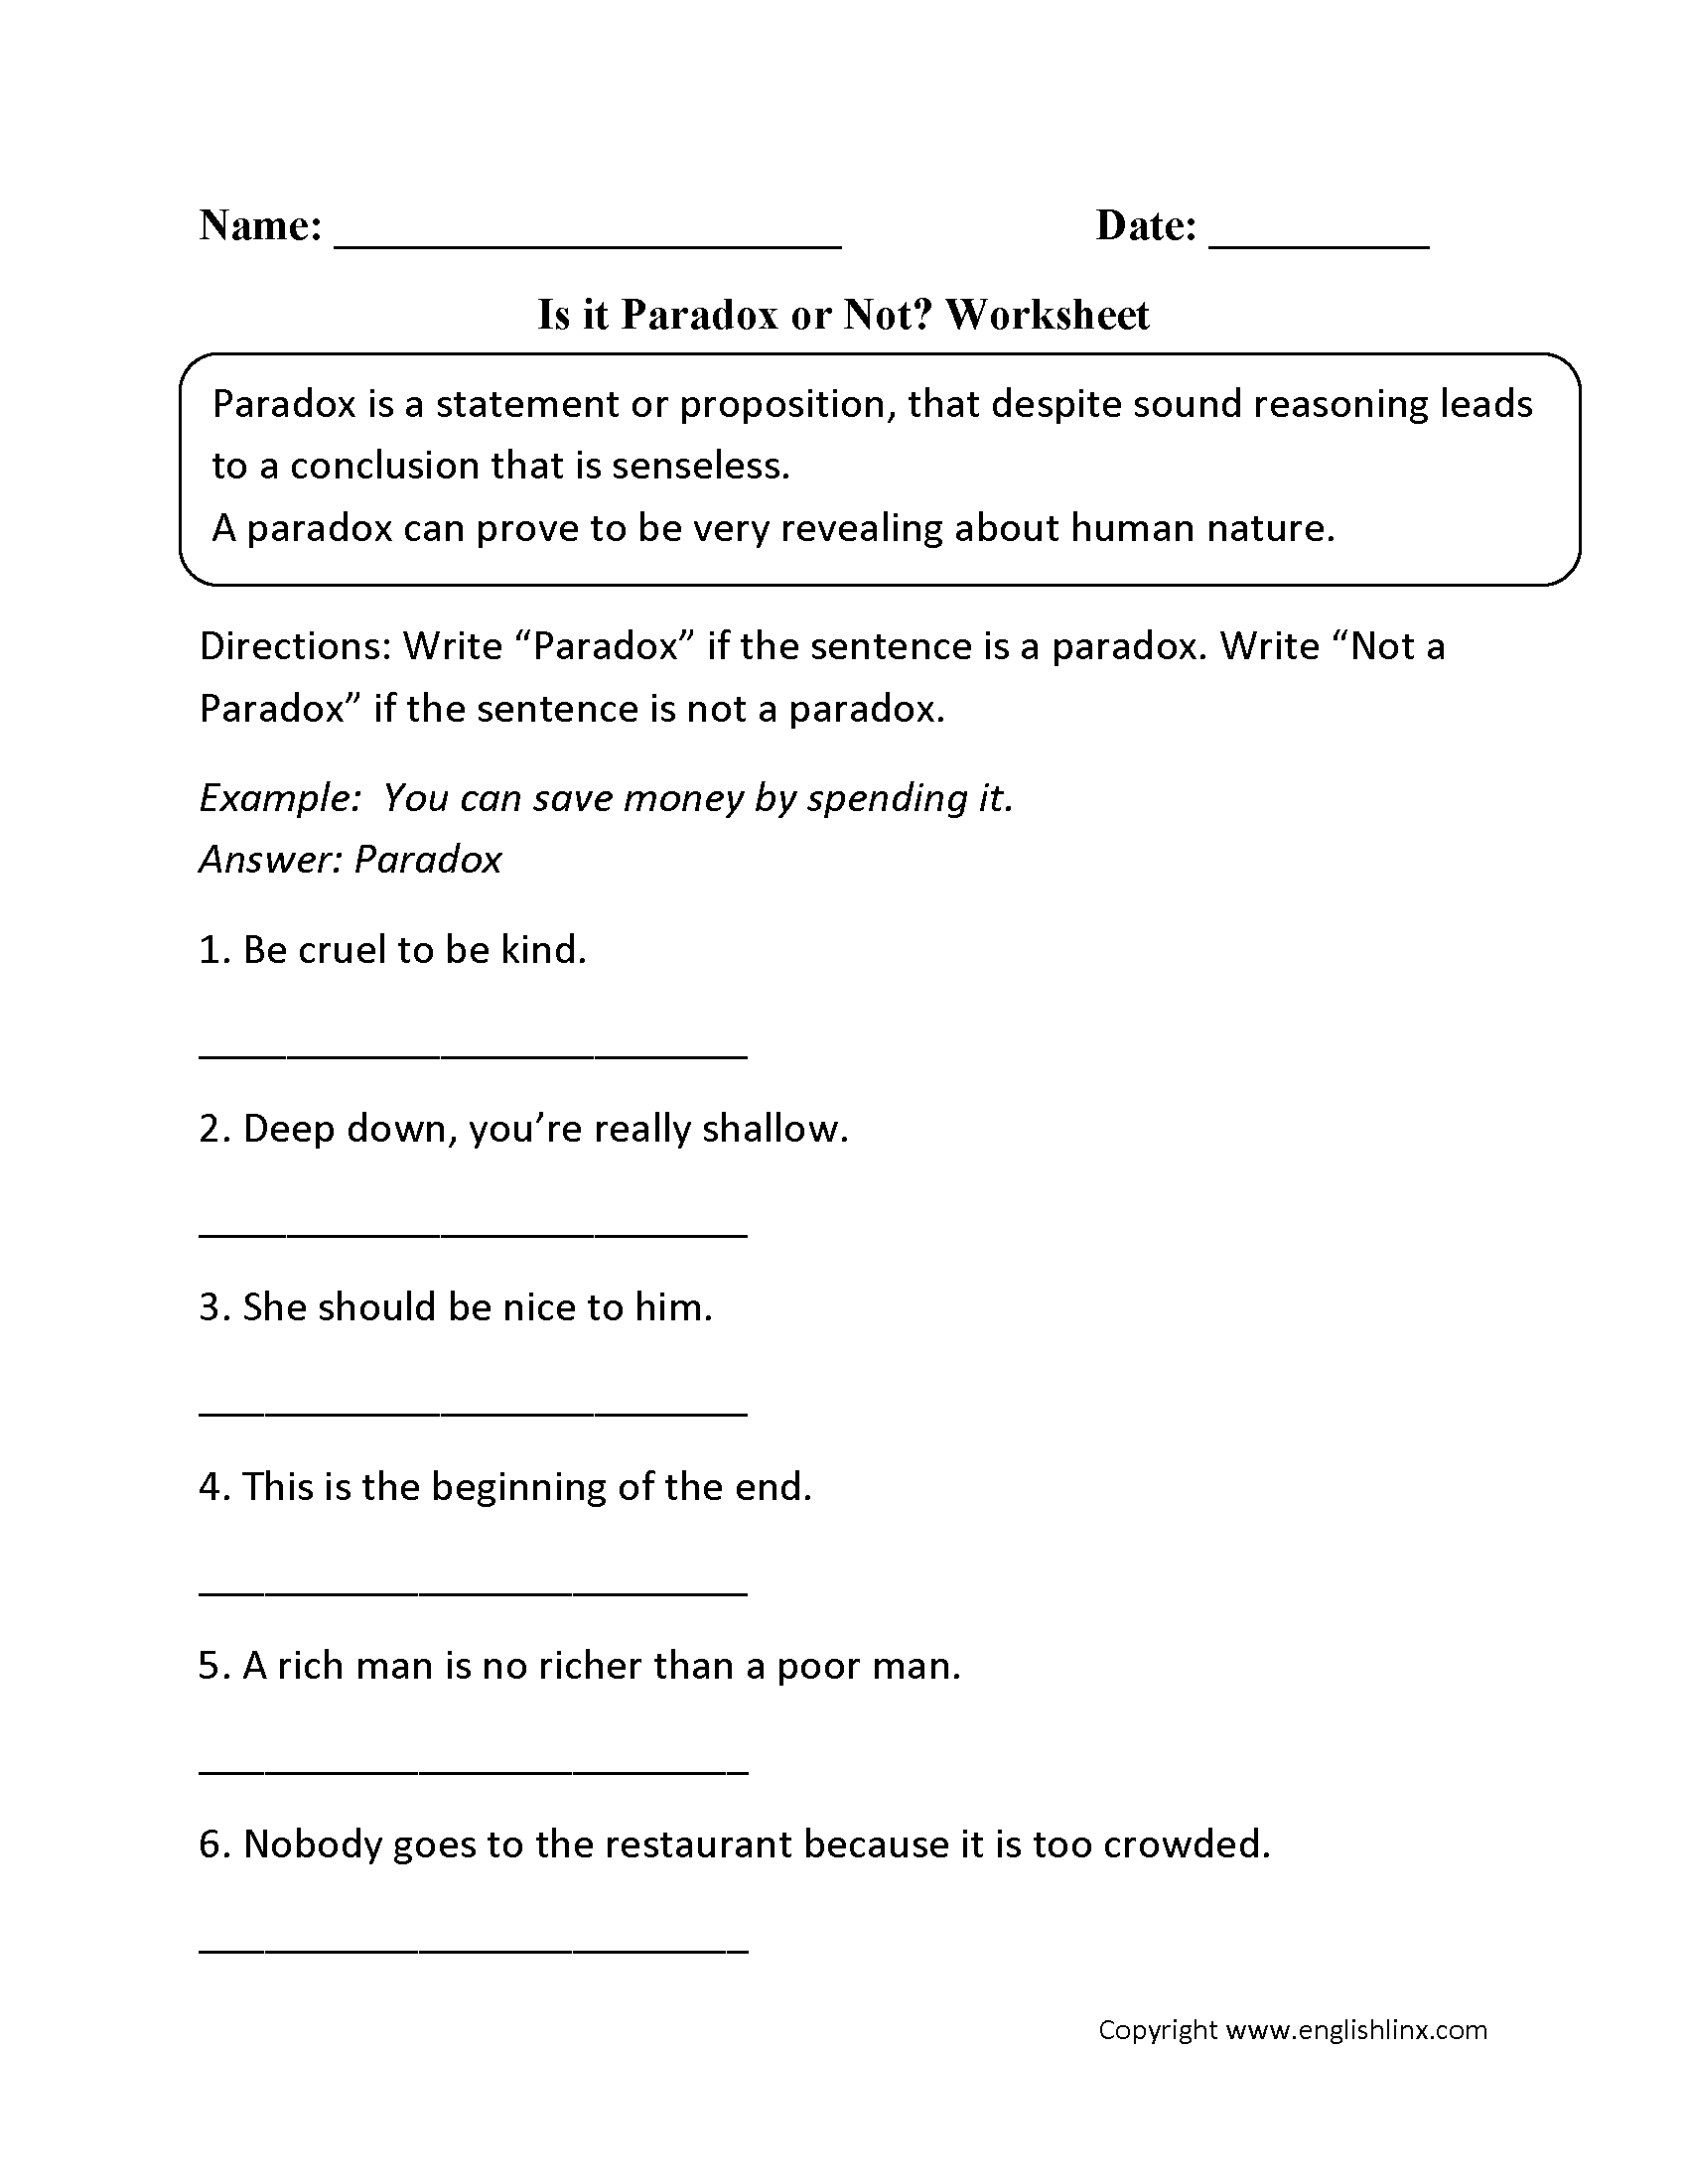 Worksheet Identifying Irony Worksheet Answers Grass Fedjp Worksheet Study Site